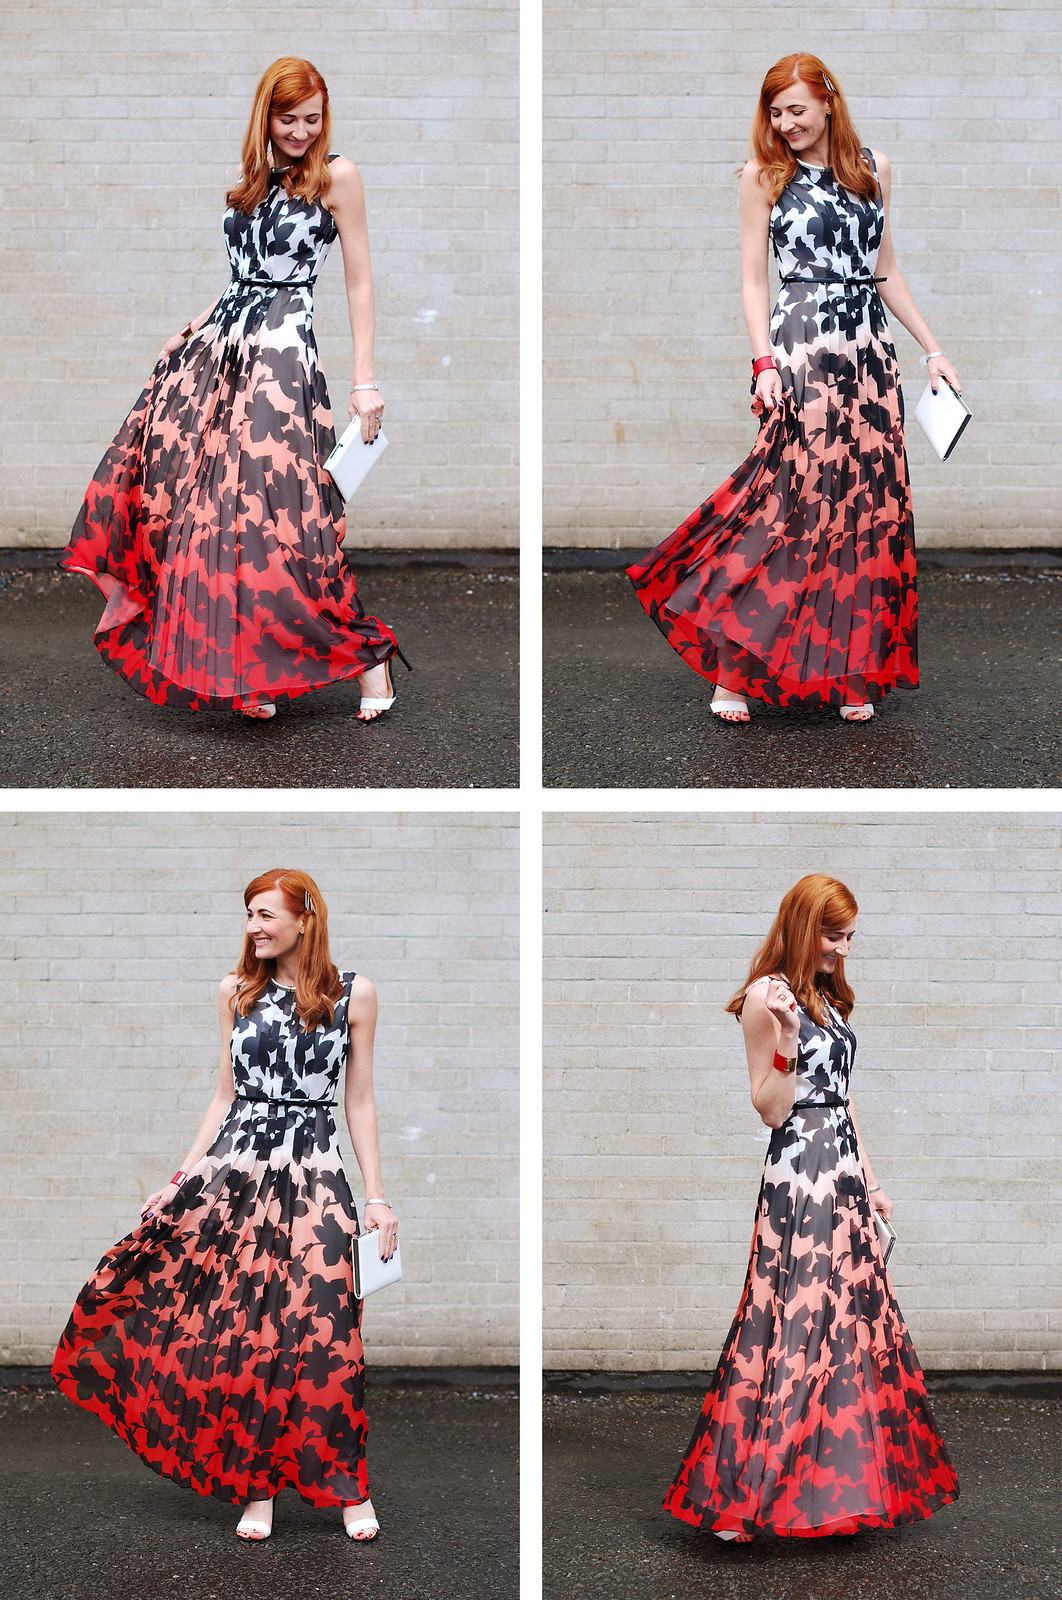 Red, black & white ombre patterned dress